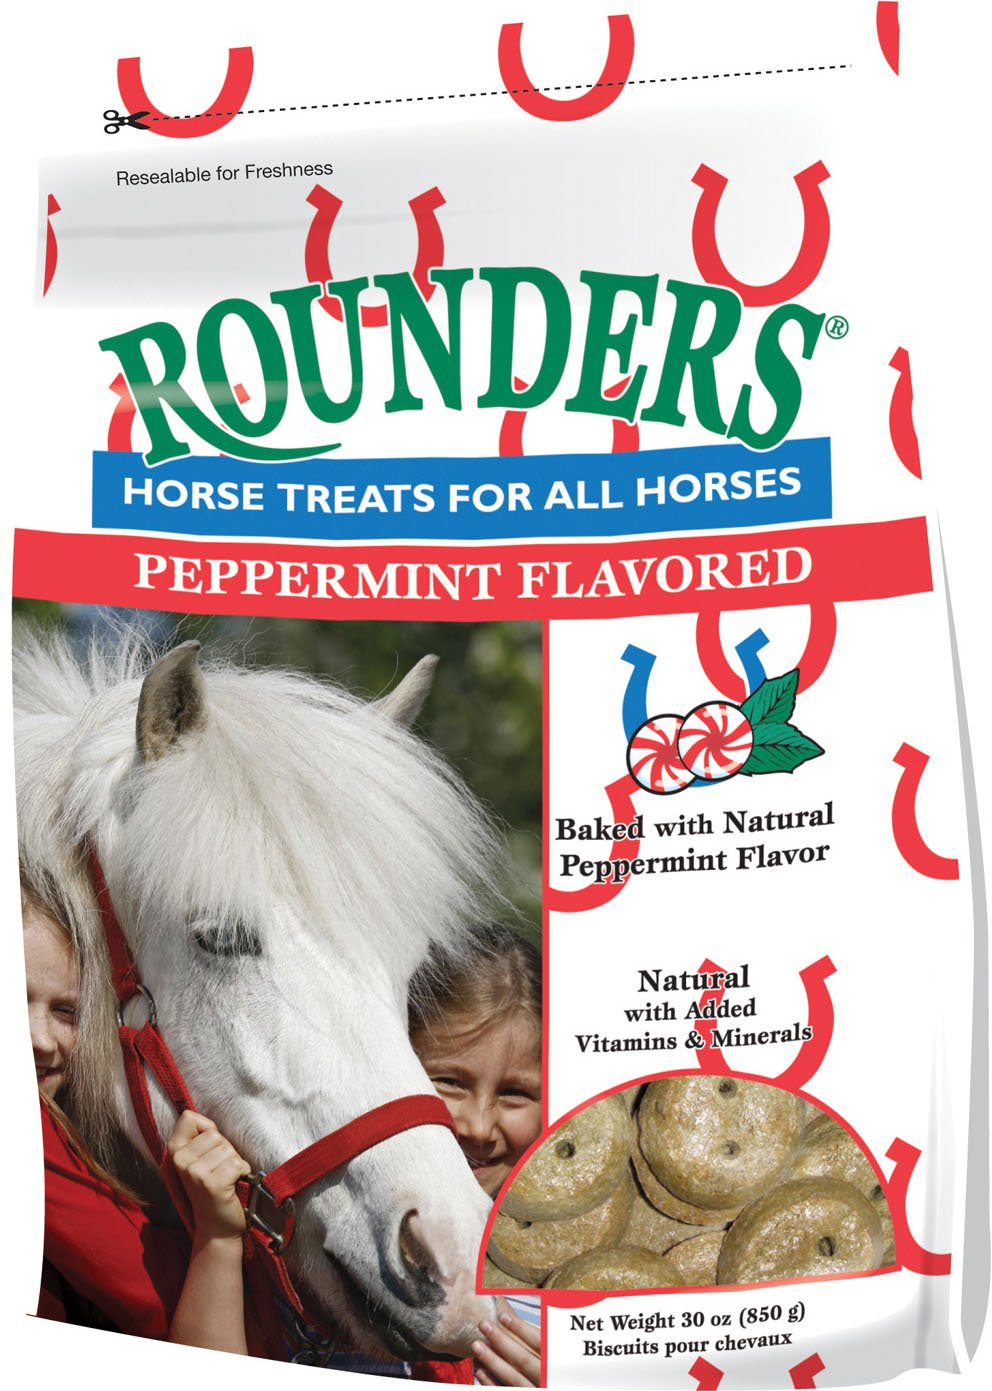 Peppermint Rounders Horse Treat 30 oz.